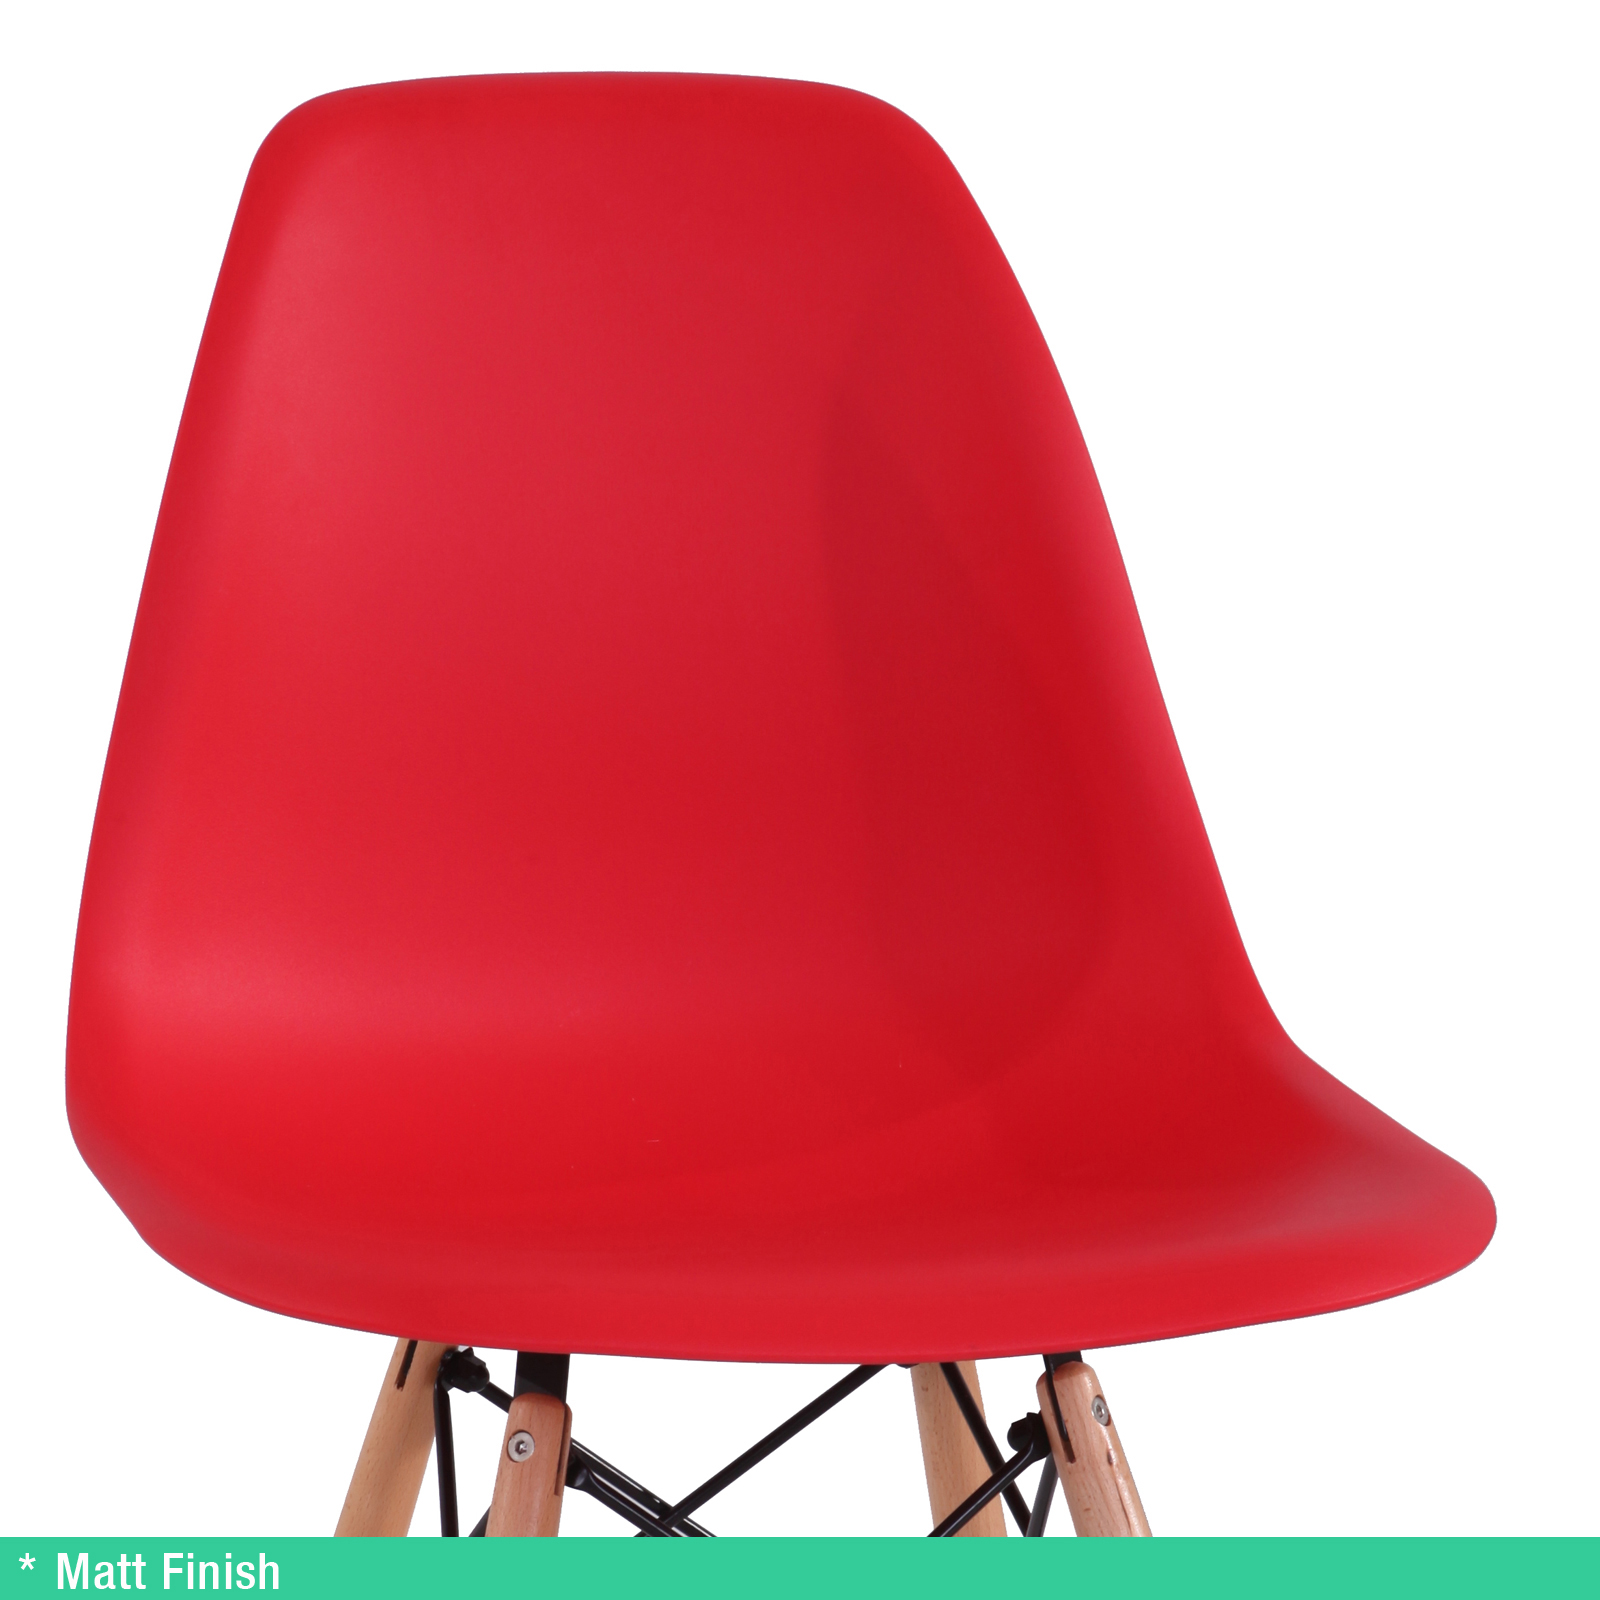 4 x Retro Replica Eames Chick DSW Dining Chairs Office  : Eames Chick Red 02 from www.ebay.com.au size 1600 x 1600 jpeg 657kB